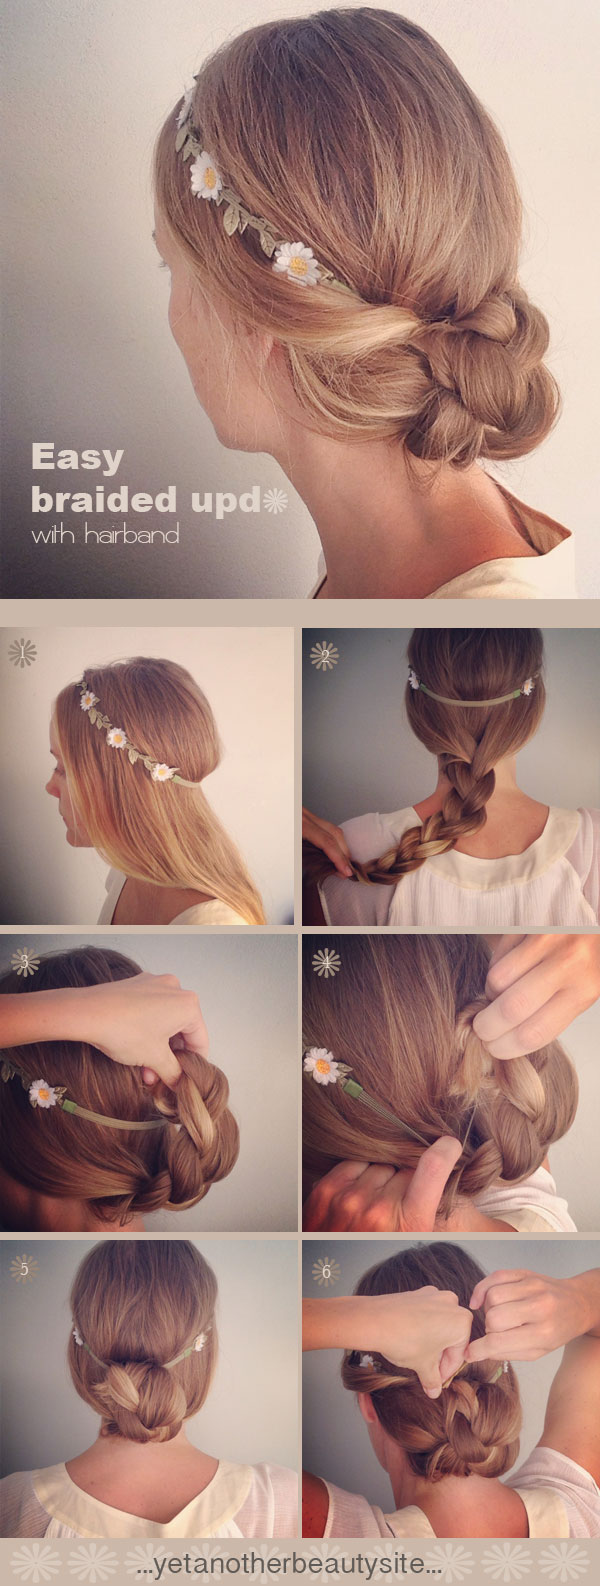 12 DIY Wedding Hairstyles with Tutorials to Try on Your Own